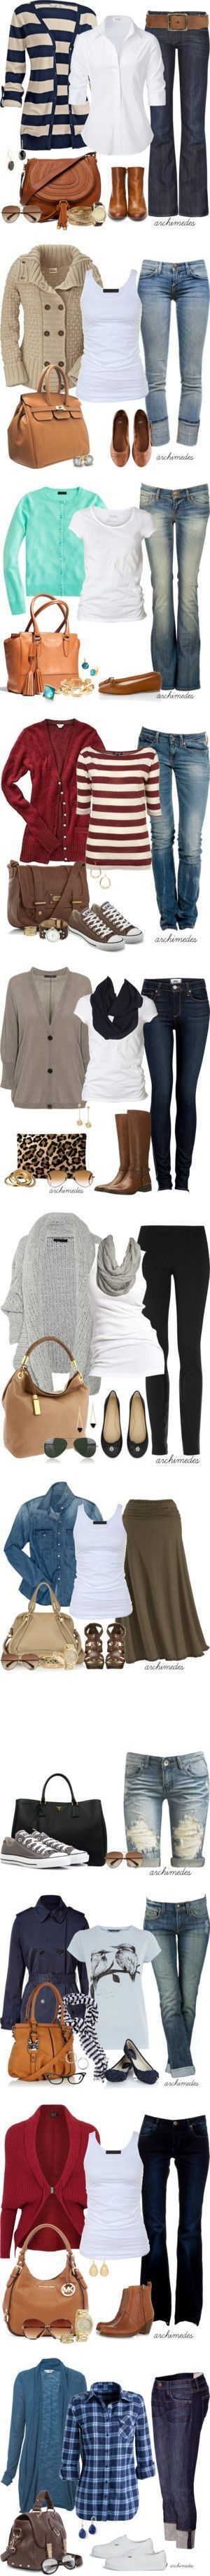 Style for over 35 ~ Great winter outfit ideas!